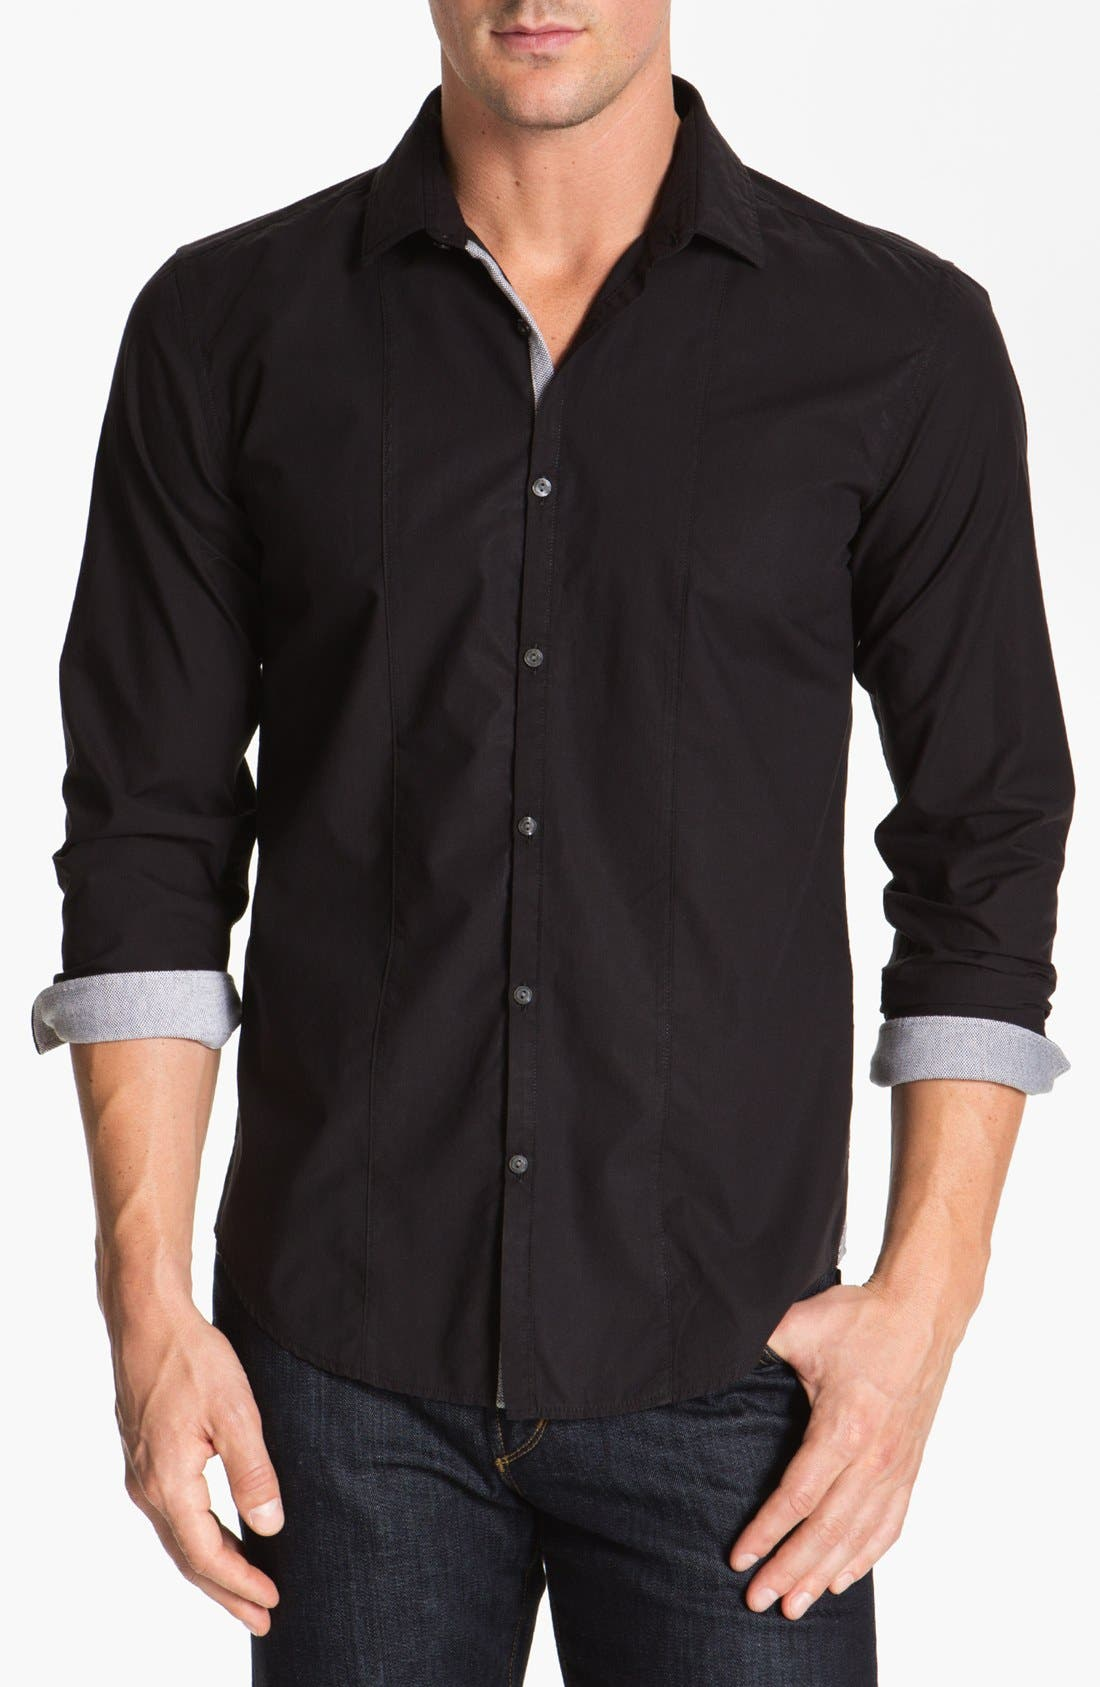 Alternate Image 1 Selected - BOSS HUGO BOSS 'Pancho' Slim Fit Sport Shirt